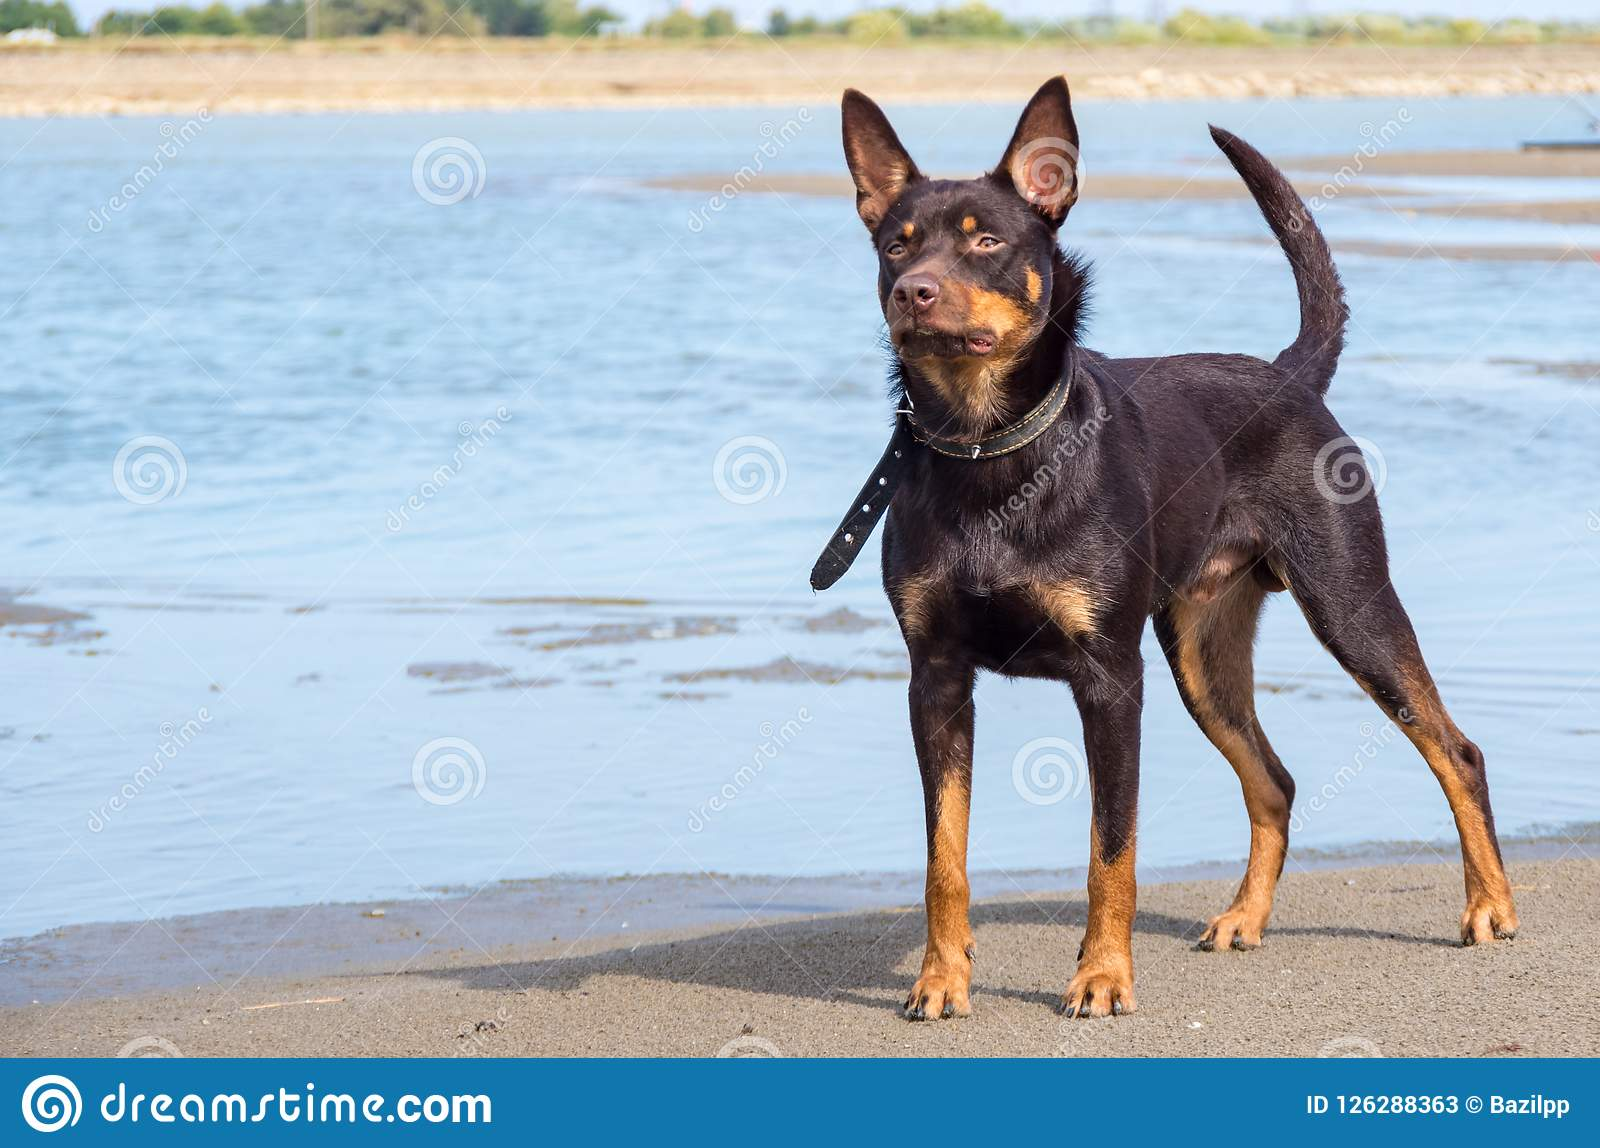 A Dog Of Australian Kelpie Breed Plays On Sand And In A